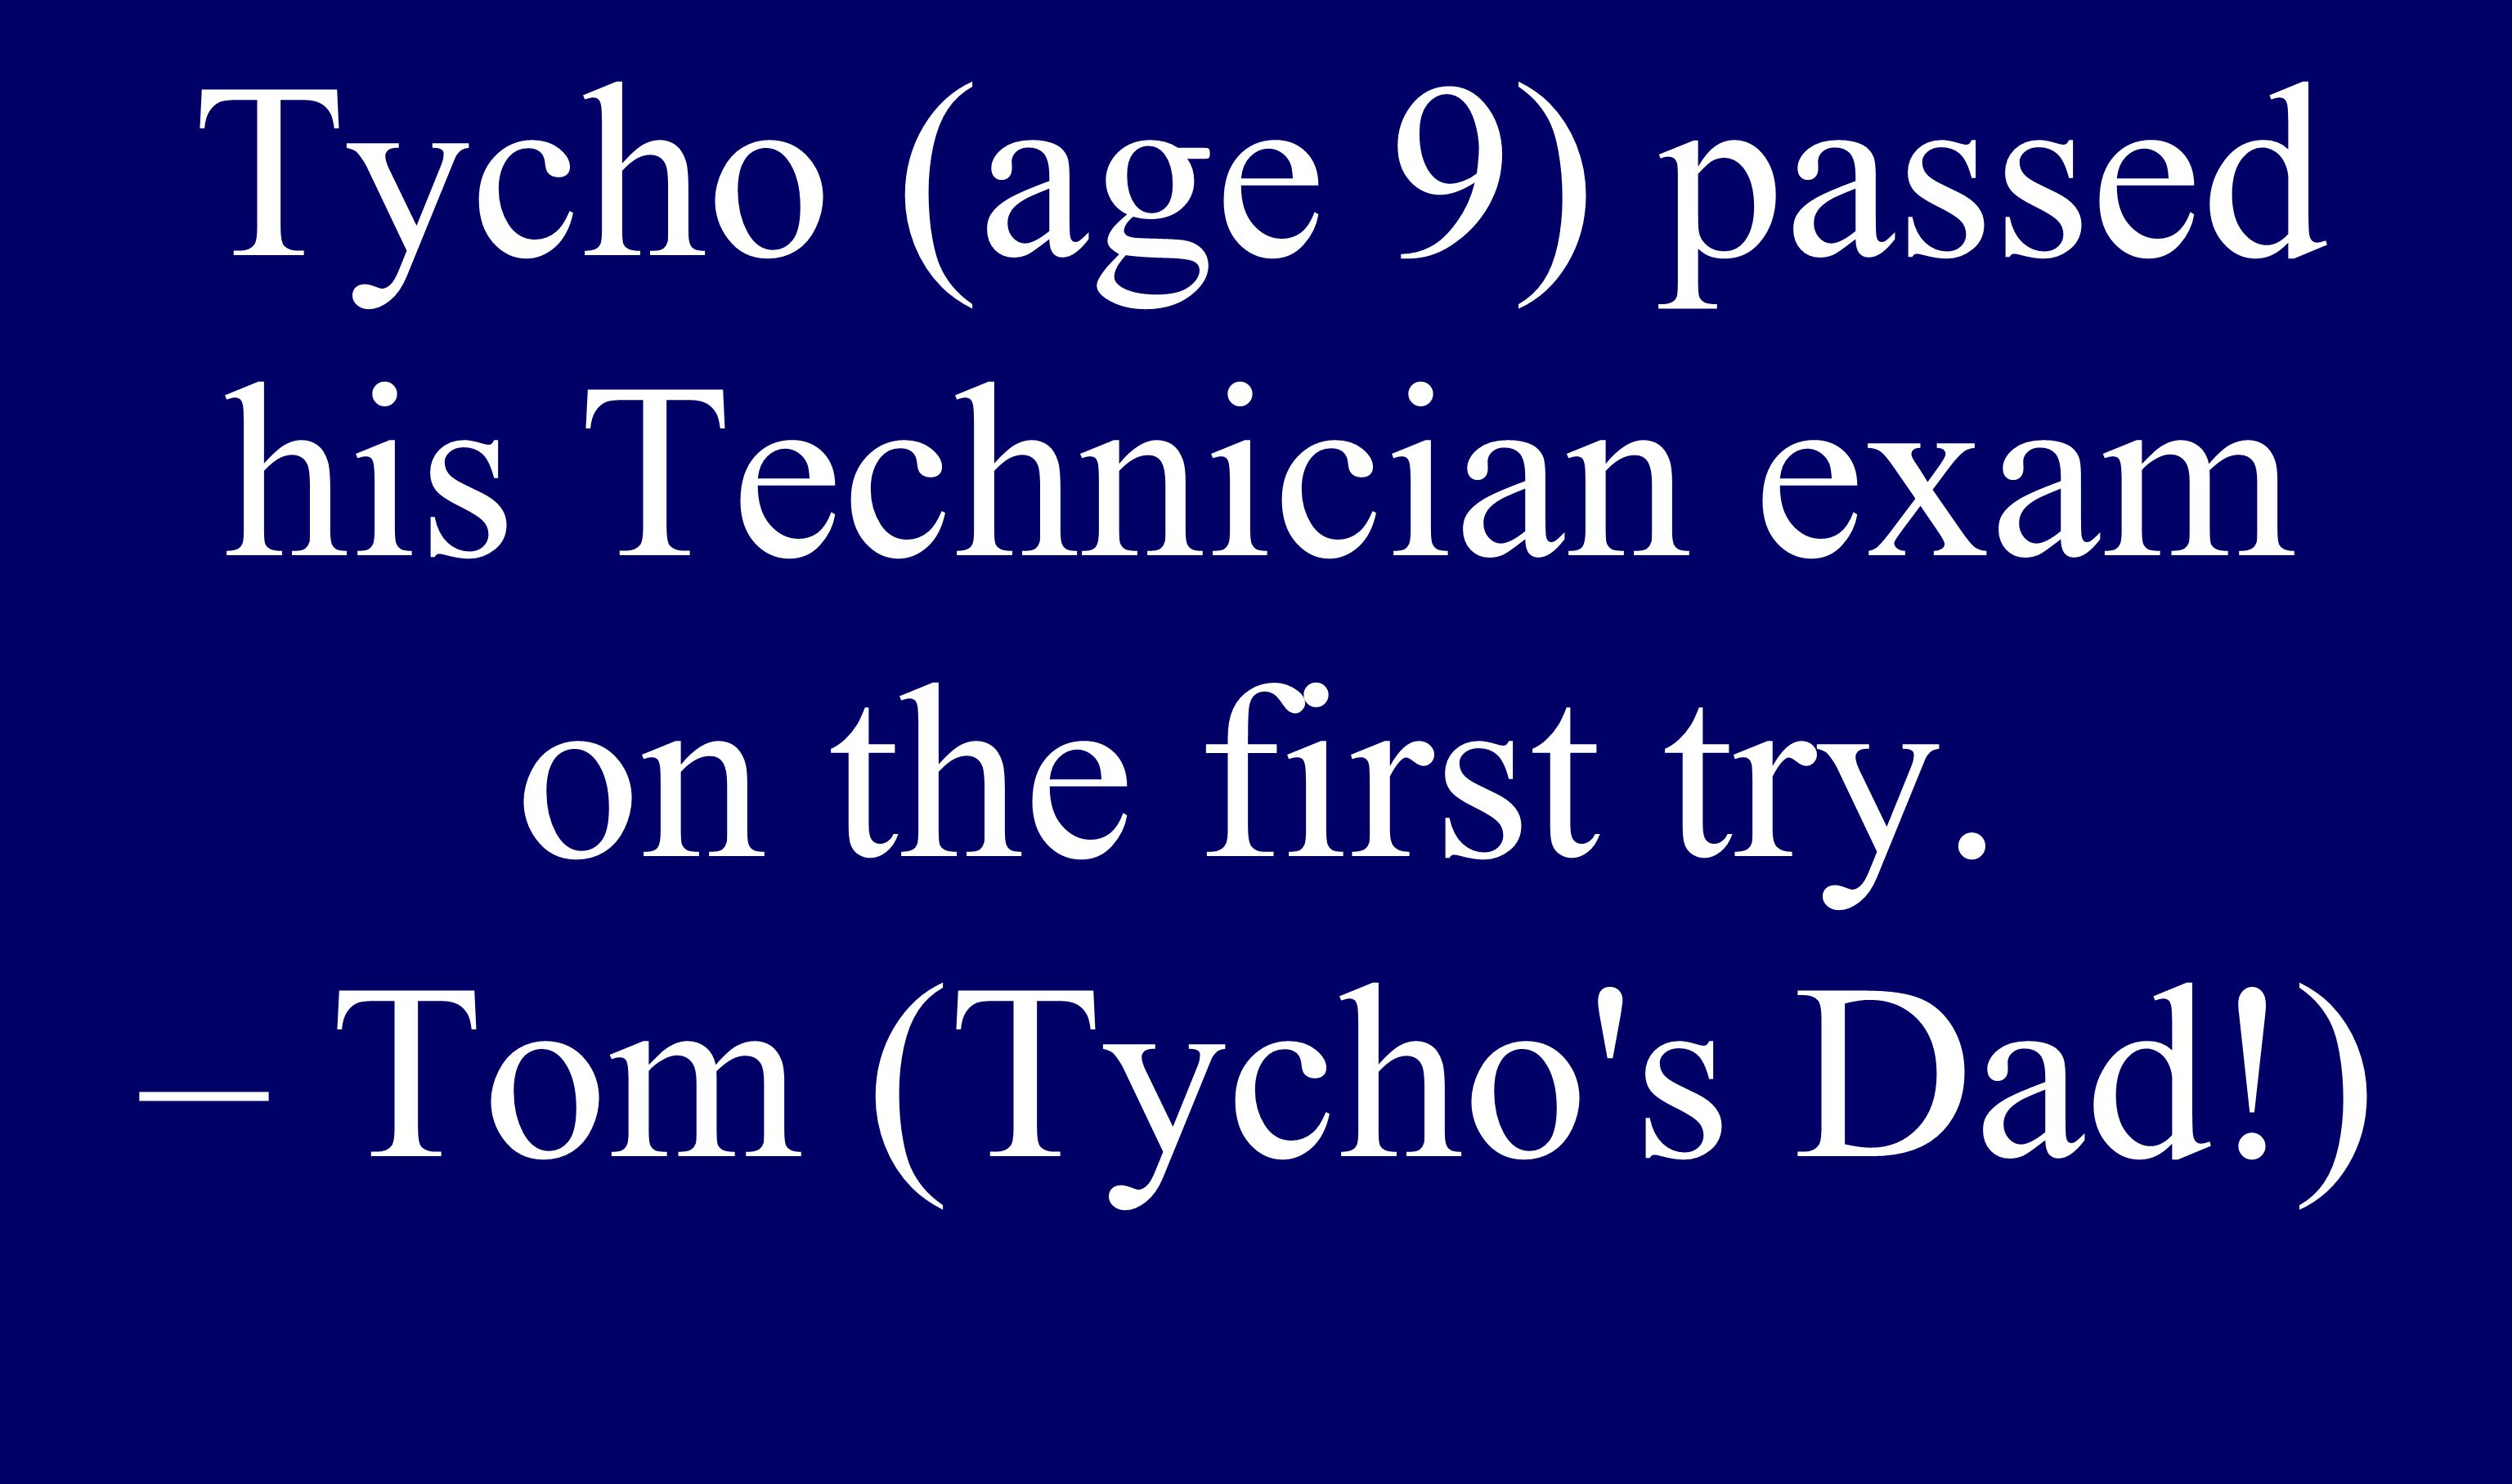 You re never too young...Tycho (age 9) passed his Technician exam on the first try.